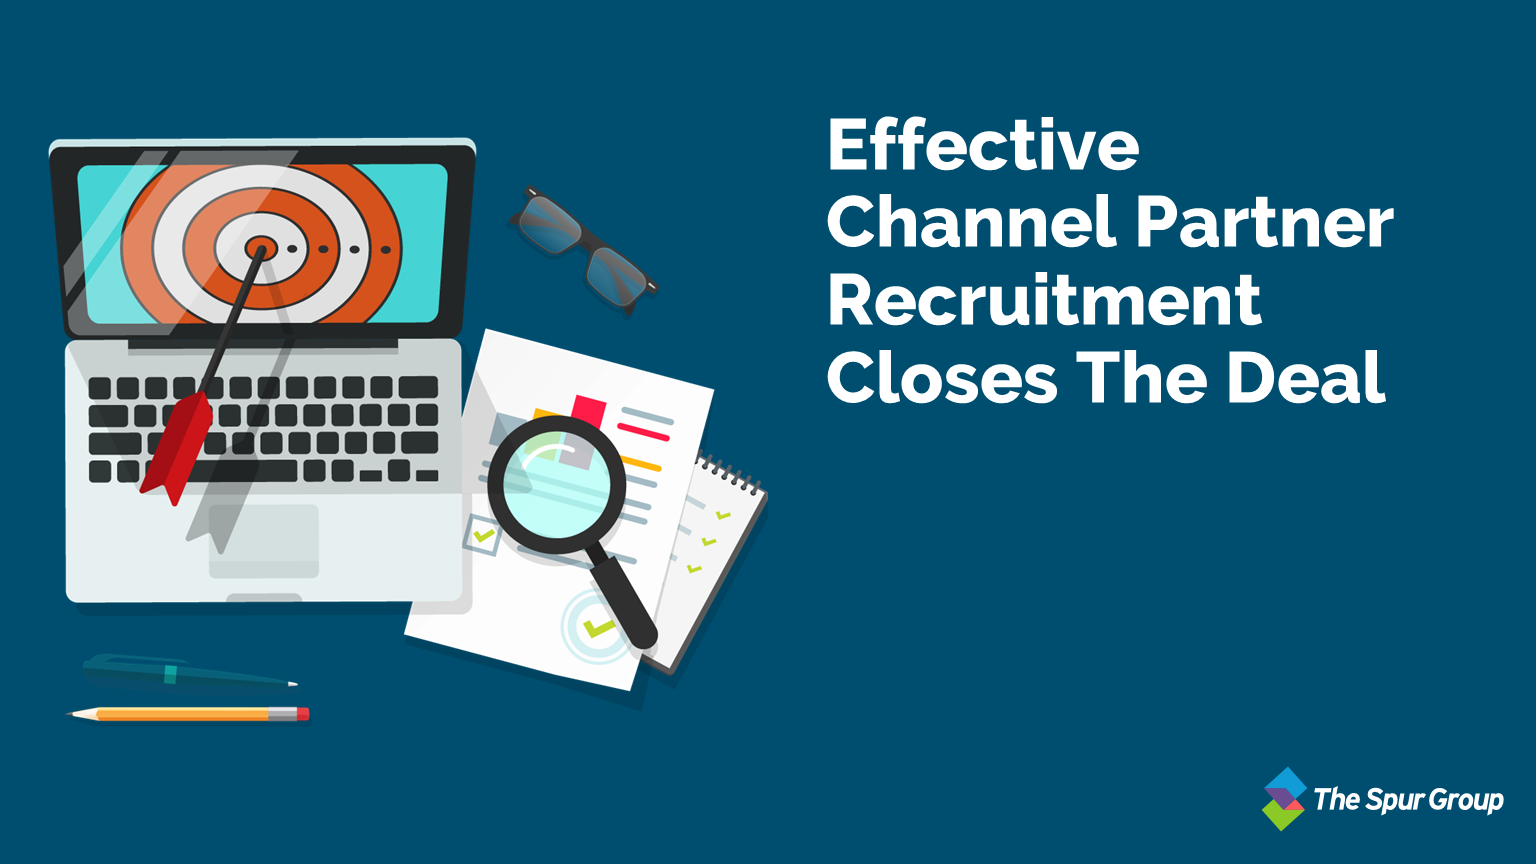 Effective Channel Partner Recruitment Closes The Deal Featured Image